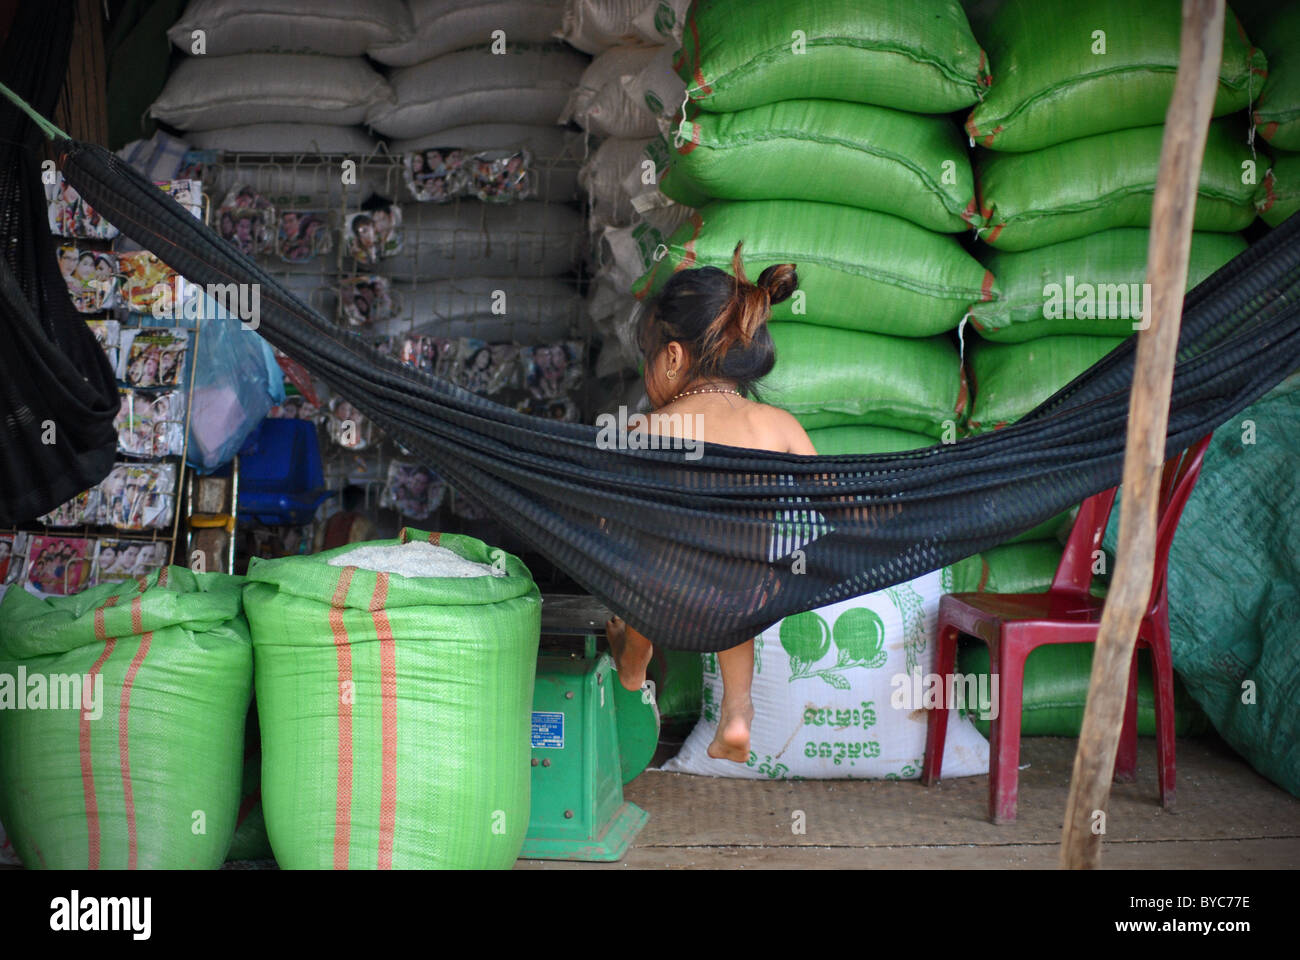 Sacks of rice in a shop in Kompong Khleang, Cambodia Stock Photo